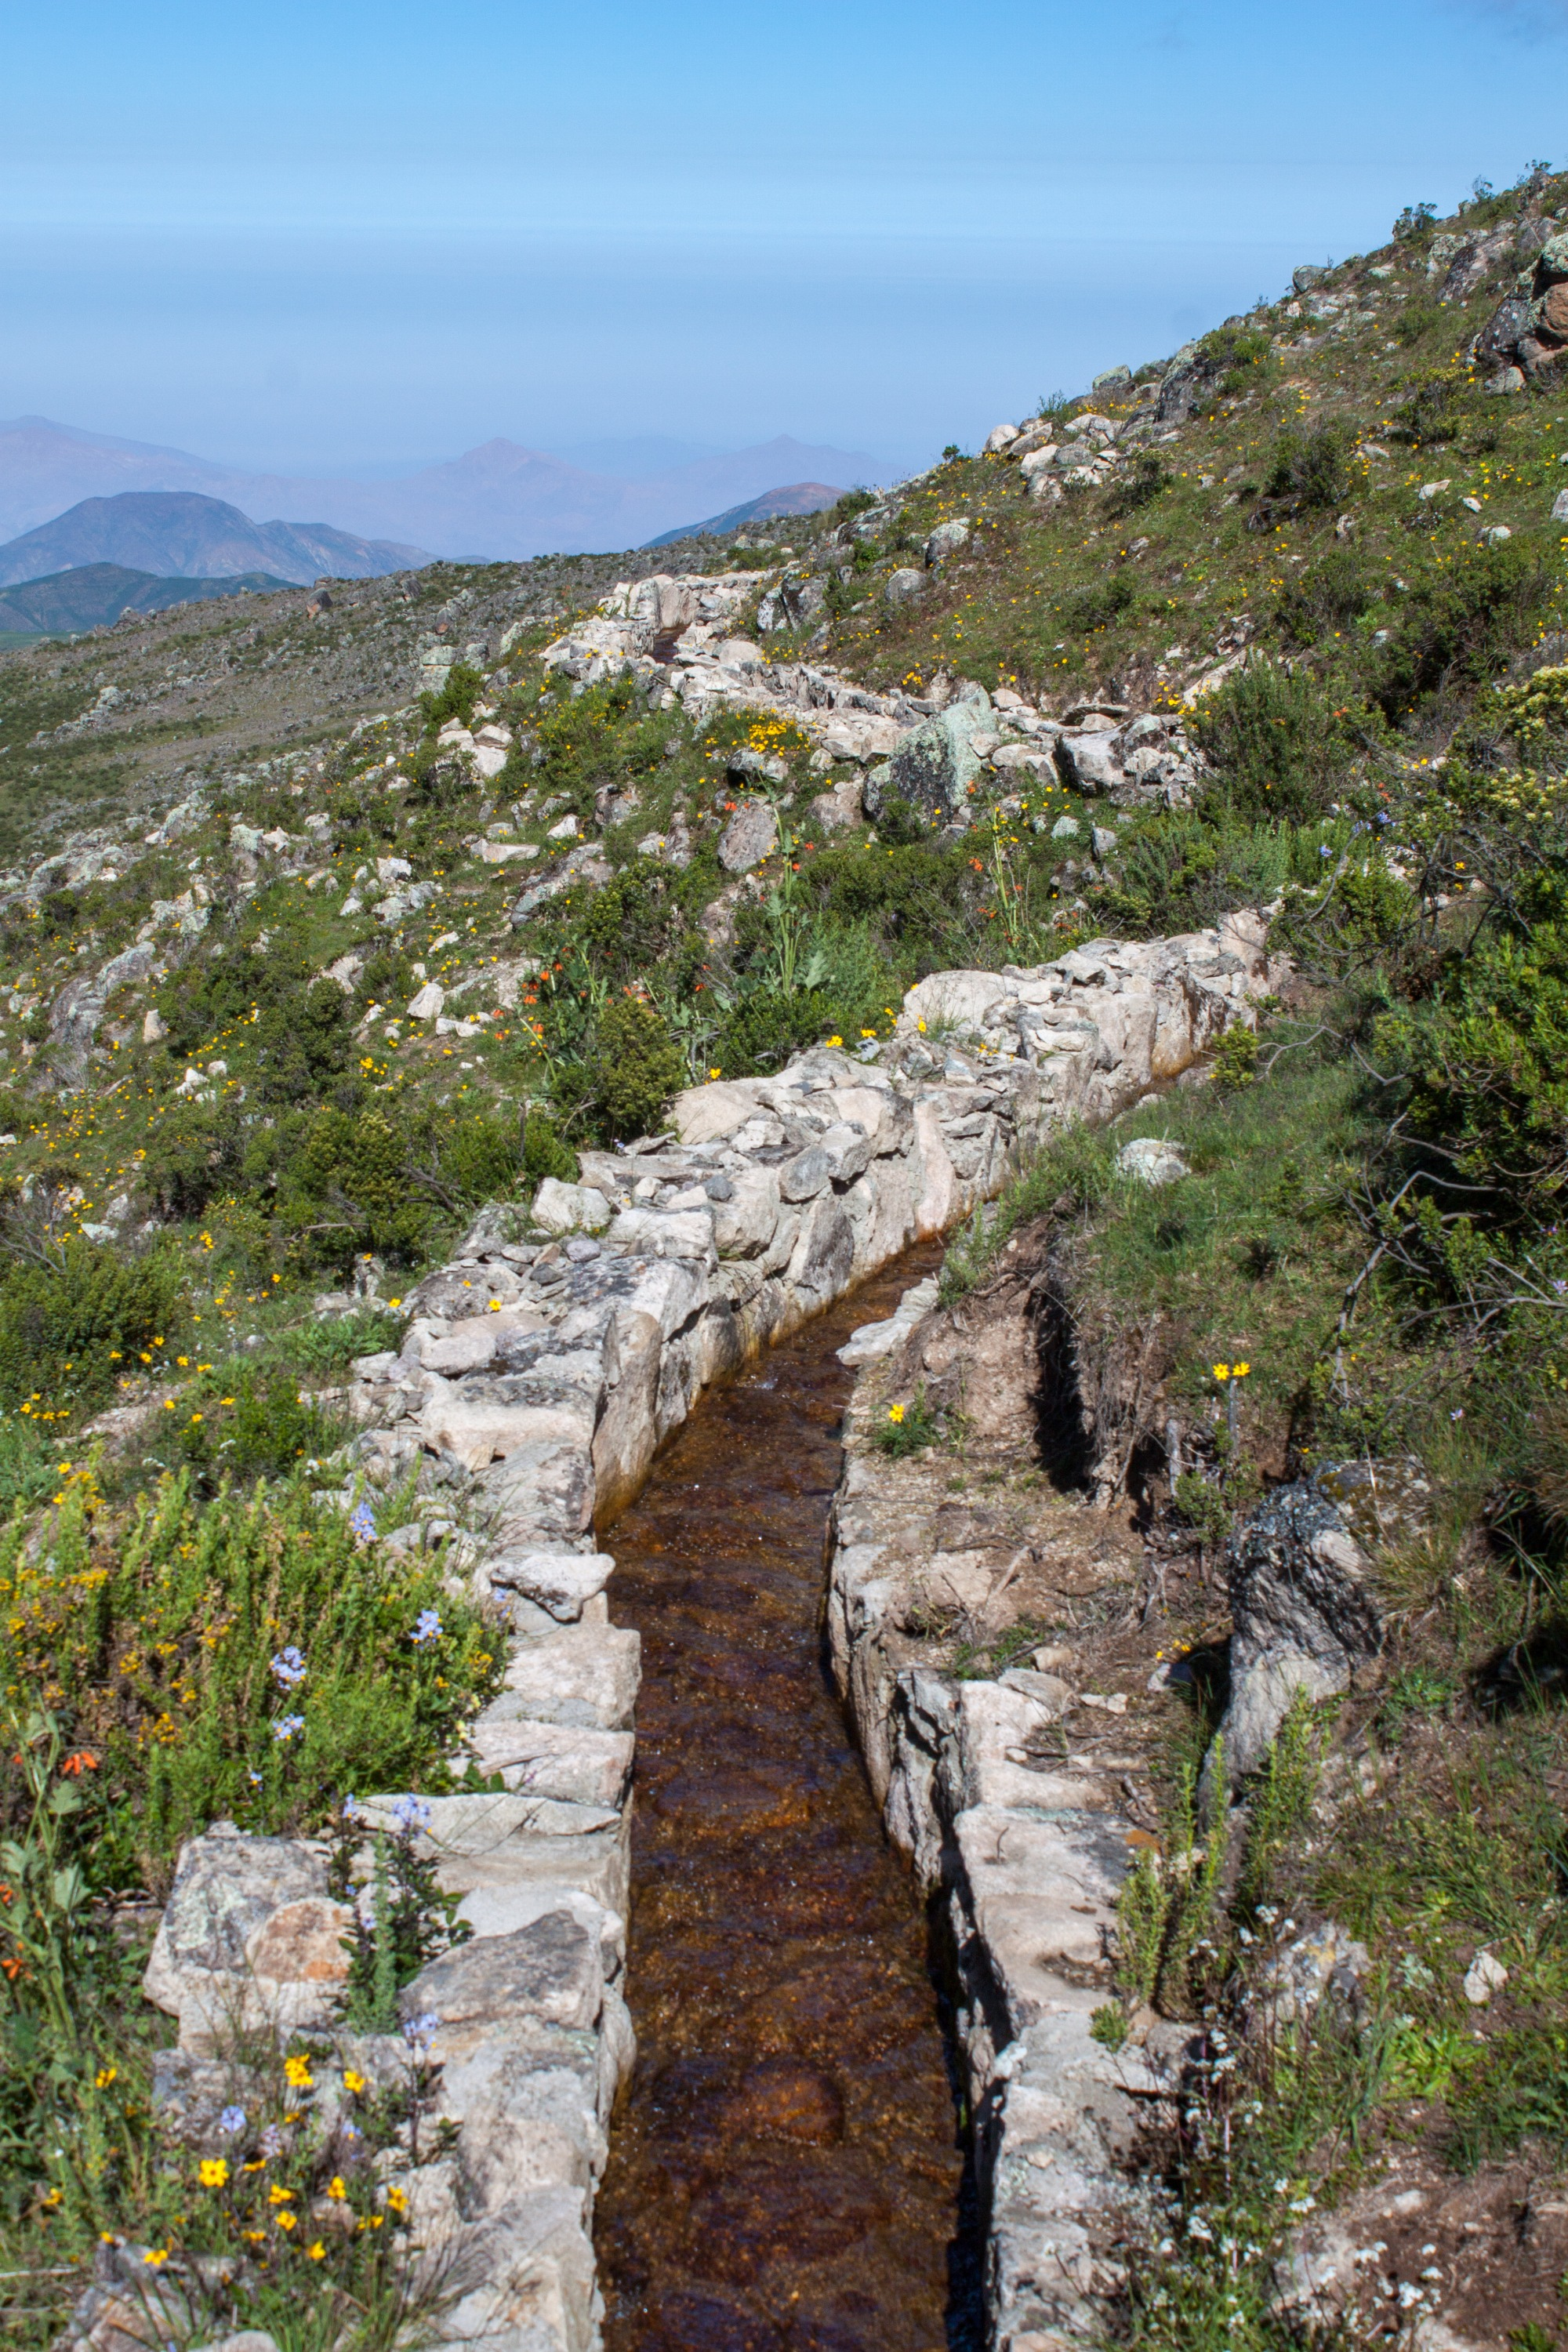 A diversion canal as part of the pre-Inca infiltration system